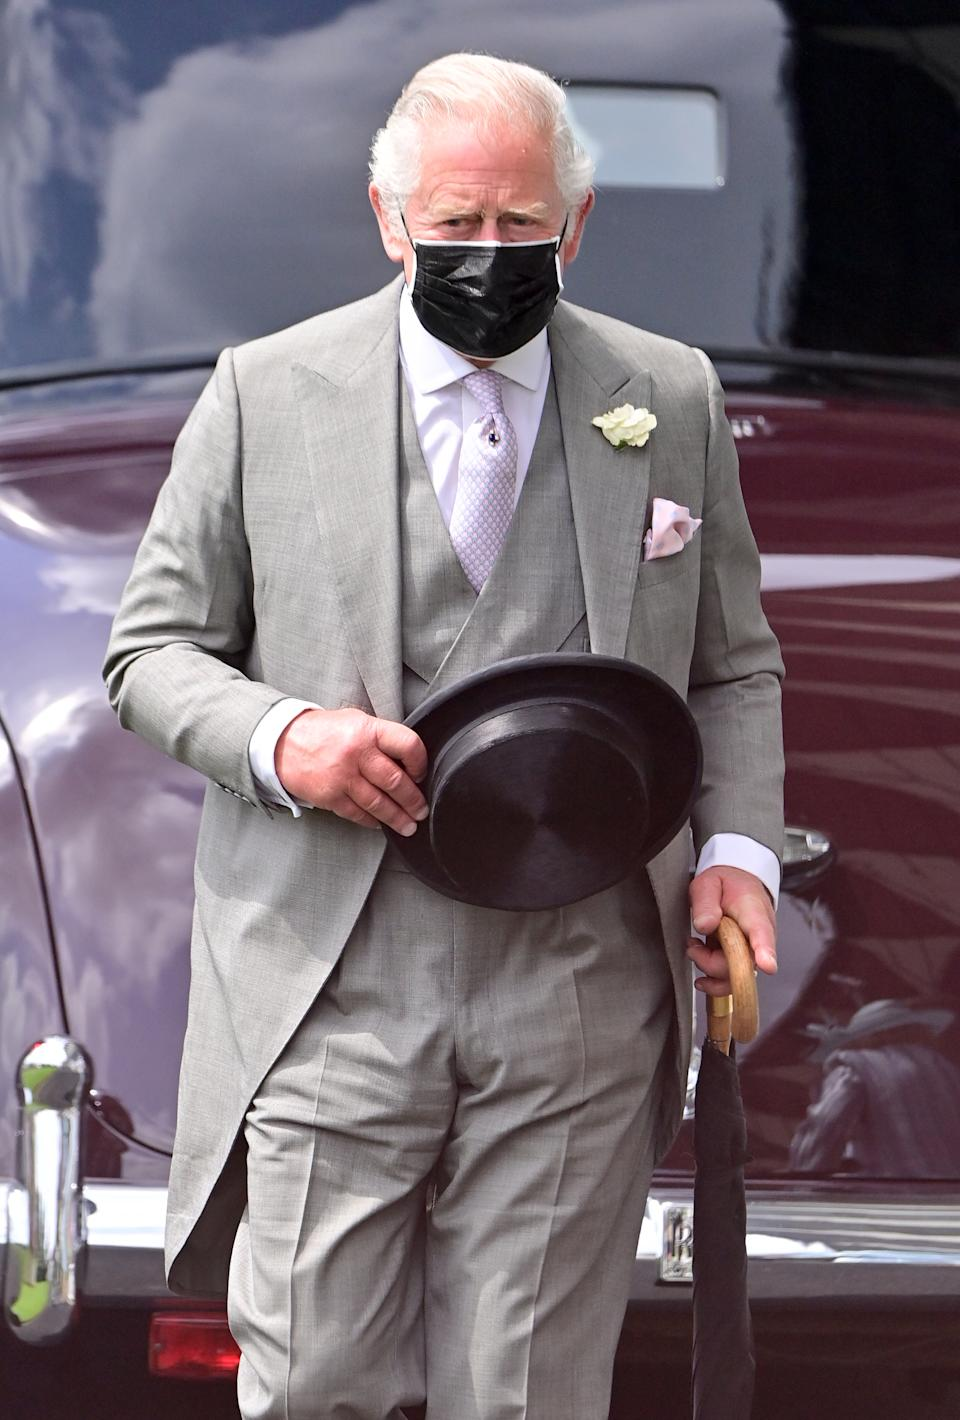 ASCOT, ENGLAND - JUNE 15: Prince Charles, Prince of Wales attends Royal Ascot 2021 at Ascot Racecourse on June 15, 2021 in Ascot, England. (Photo by Samir Hussein/WireImage)